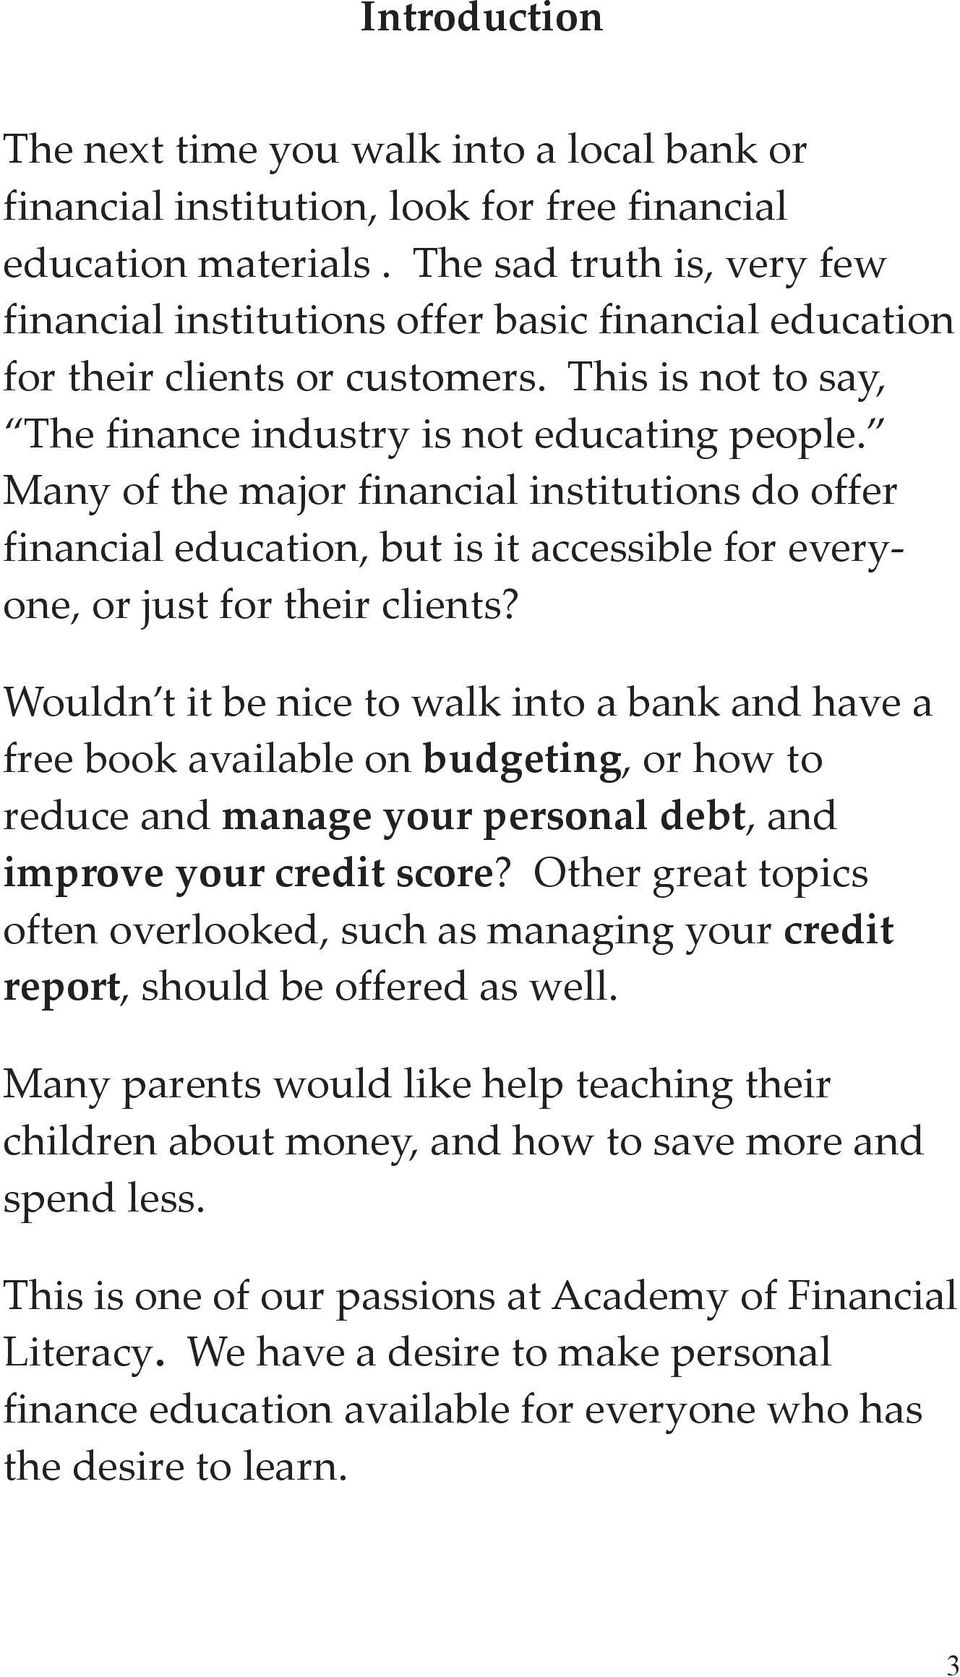 Many of the major financial institutions do offer financial education, but is it accessible for everyone, or just for their clients?